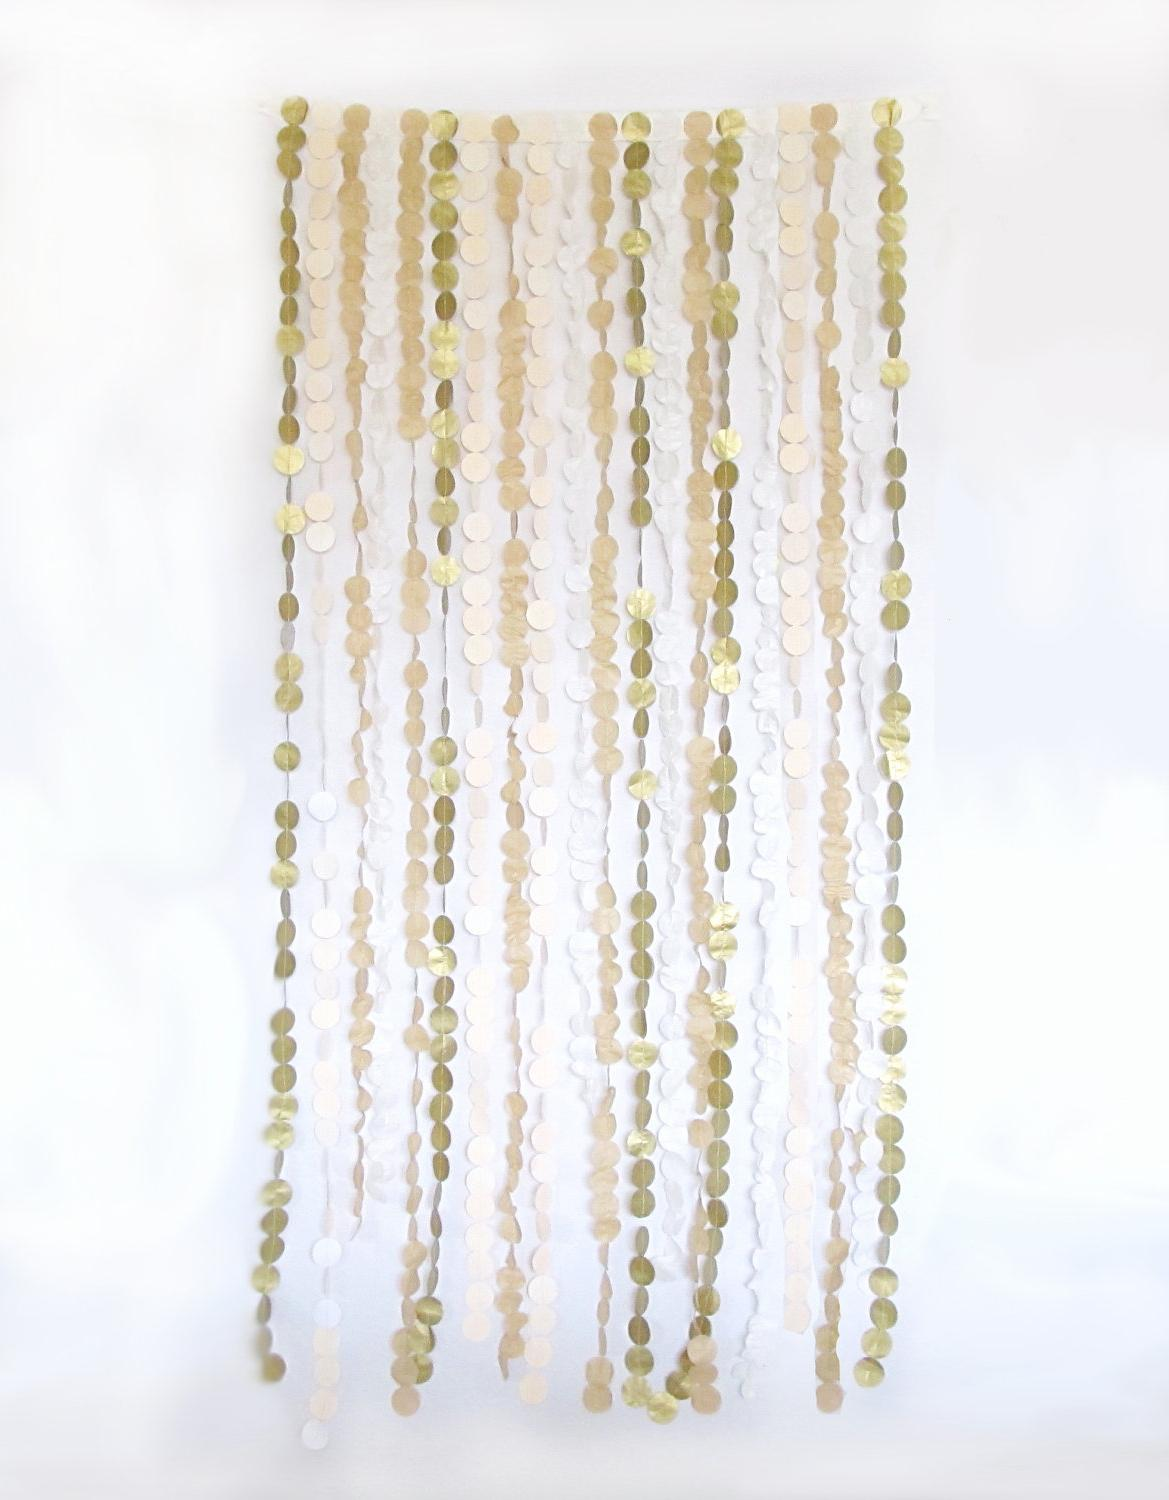 Wedding Backdrop - Tissue Garland - 6 ft. W x 5 ft. L. From ThimbleDesignInc